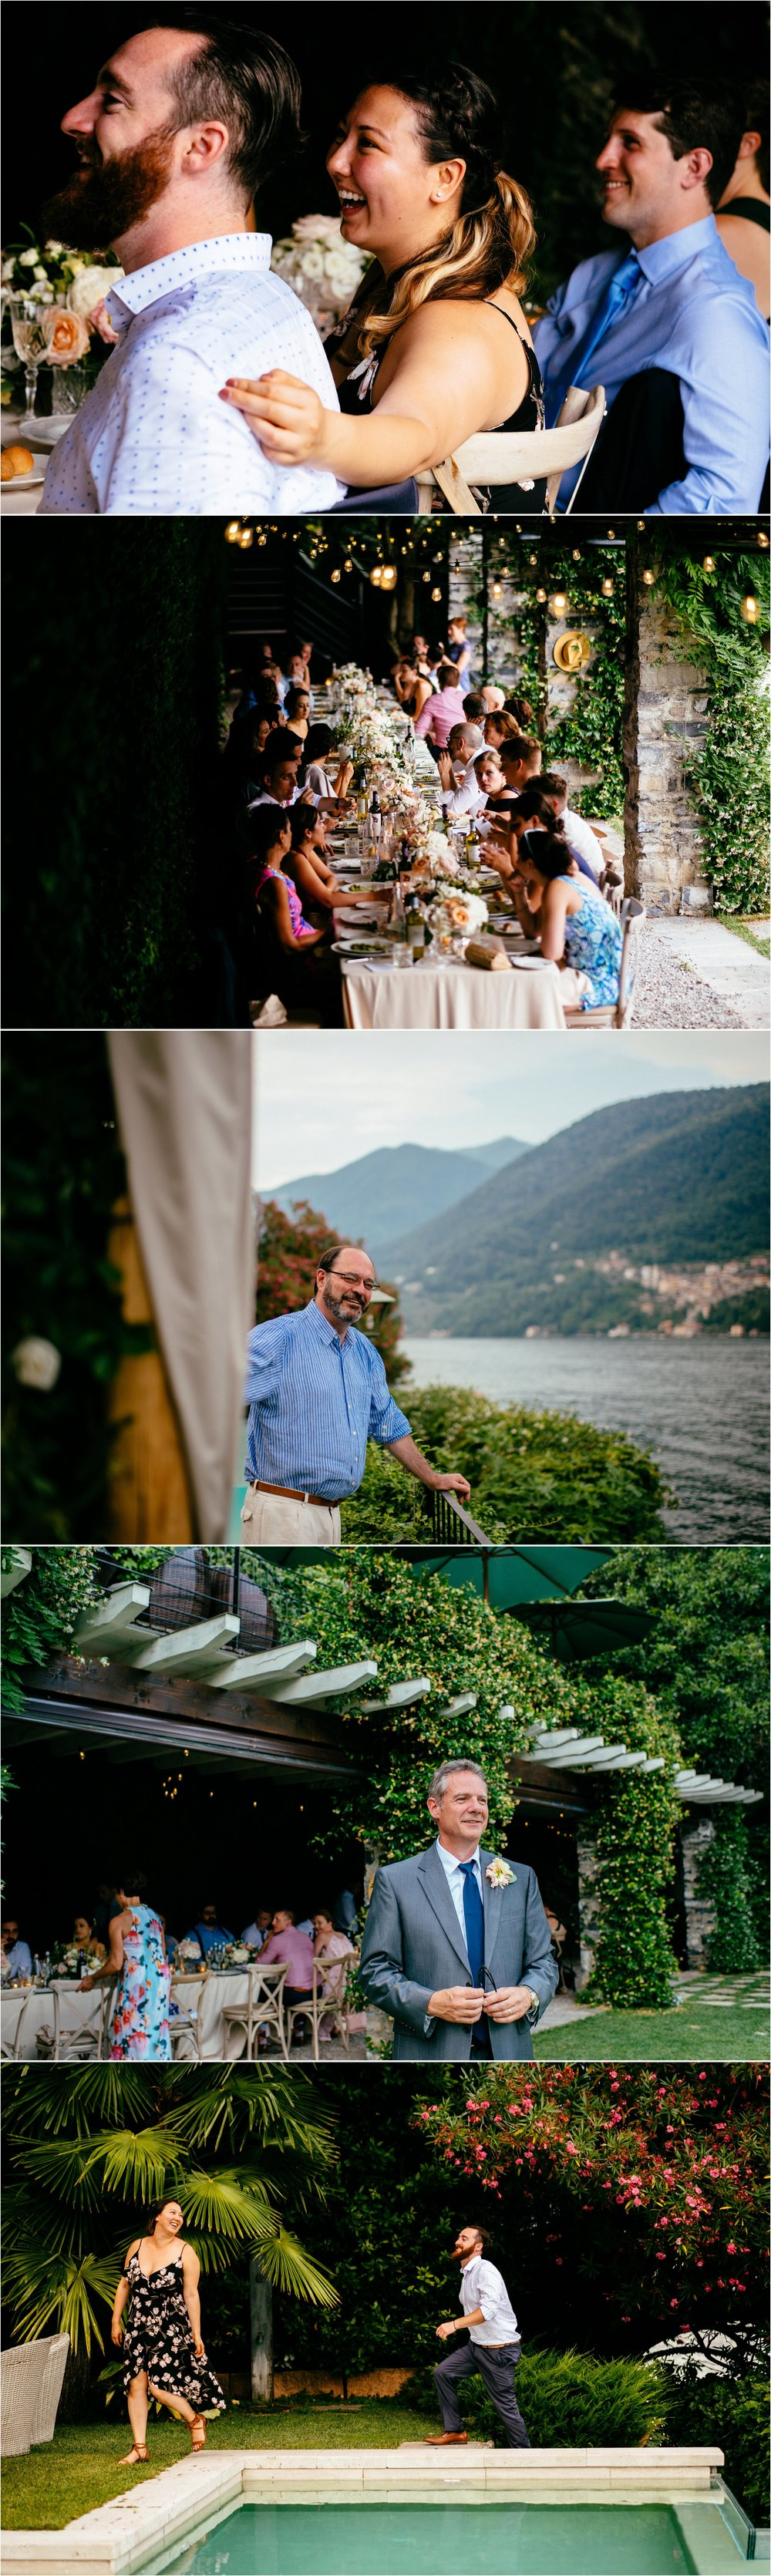 Lake Como wedding photographer_0099.jpg